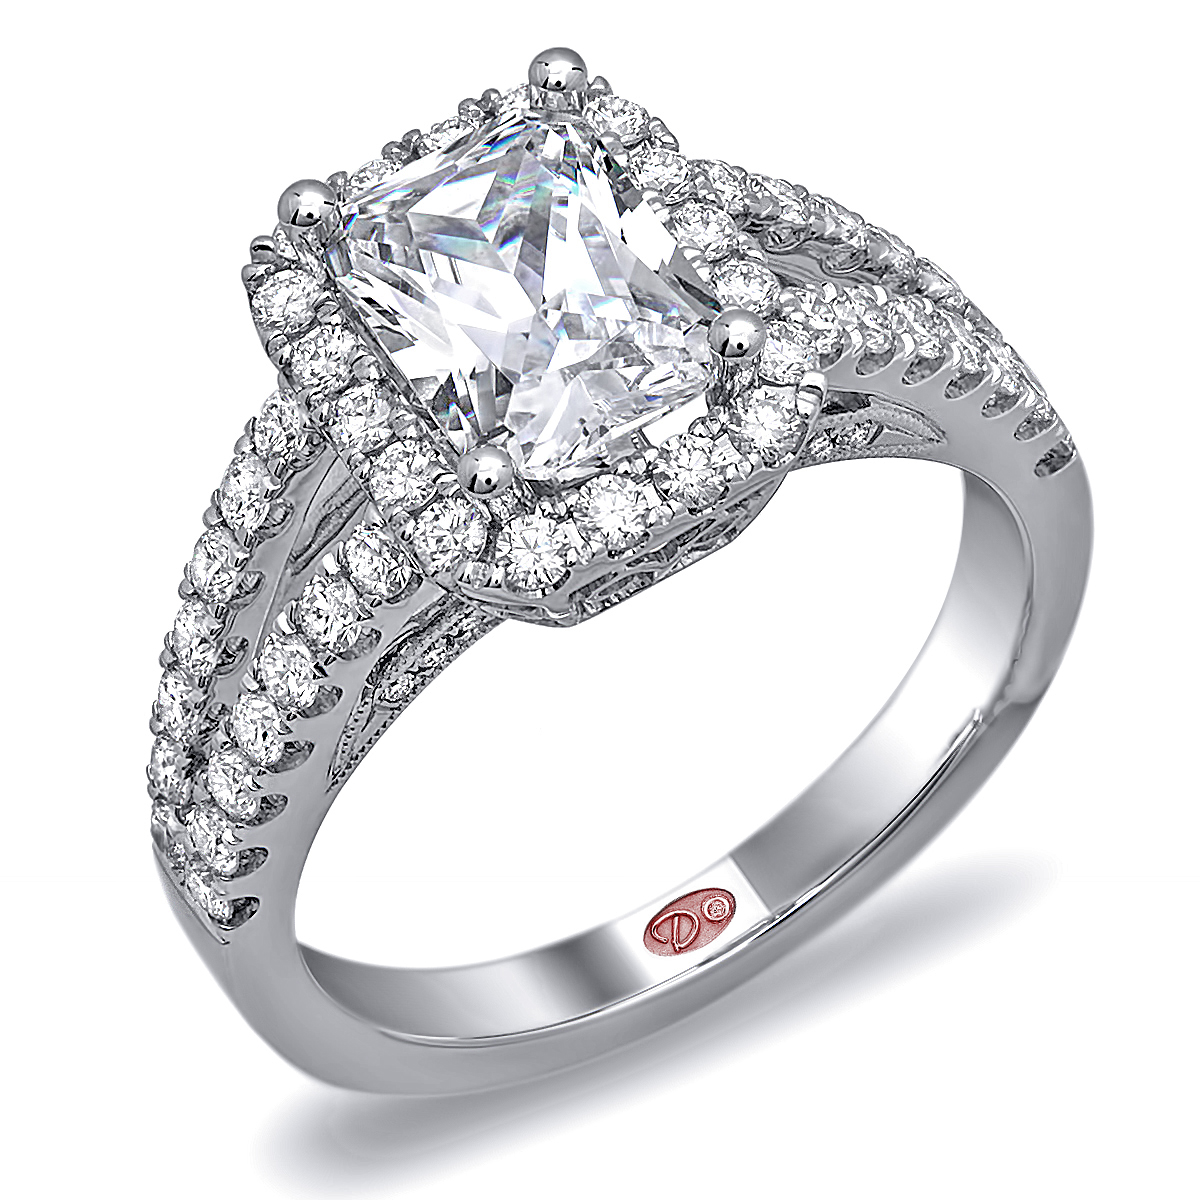 independent jewellers   designer engagement rings - dw6010